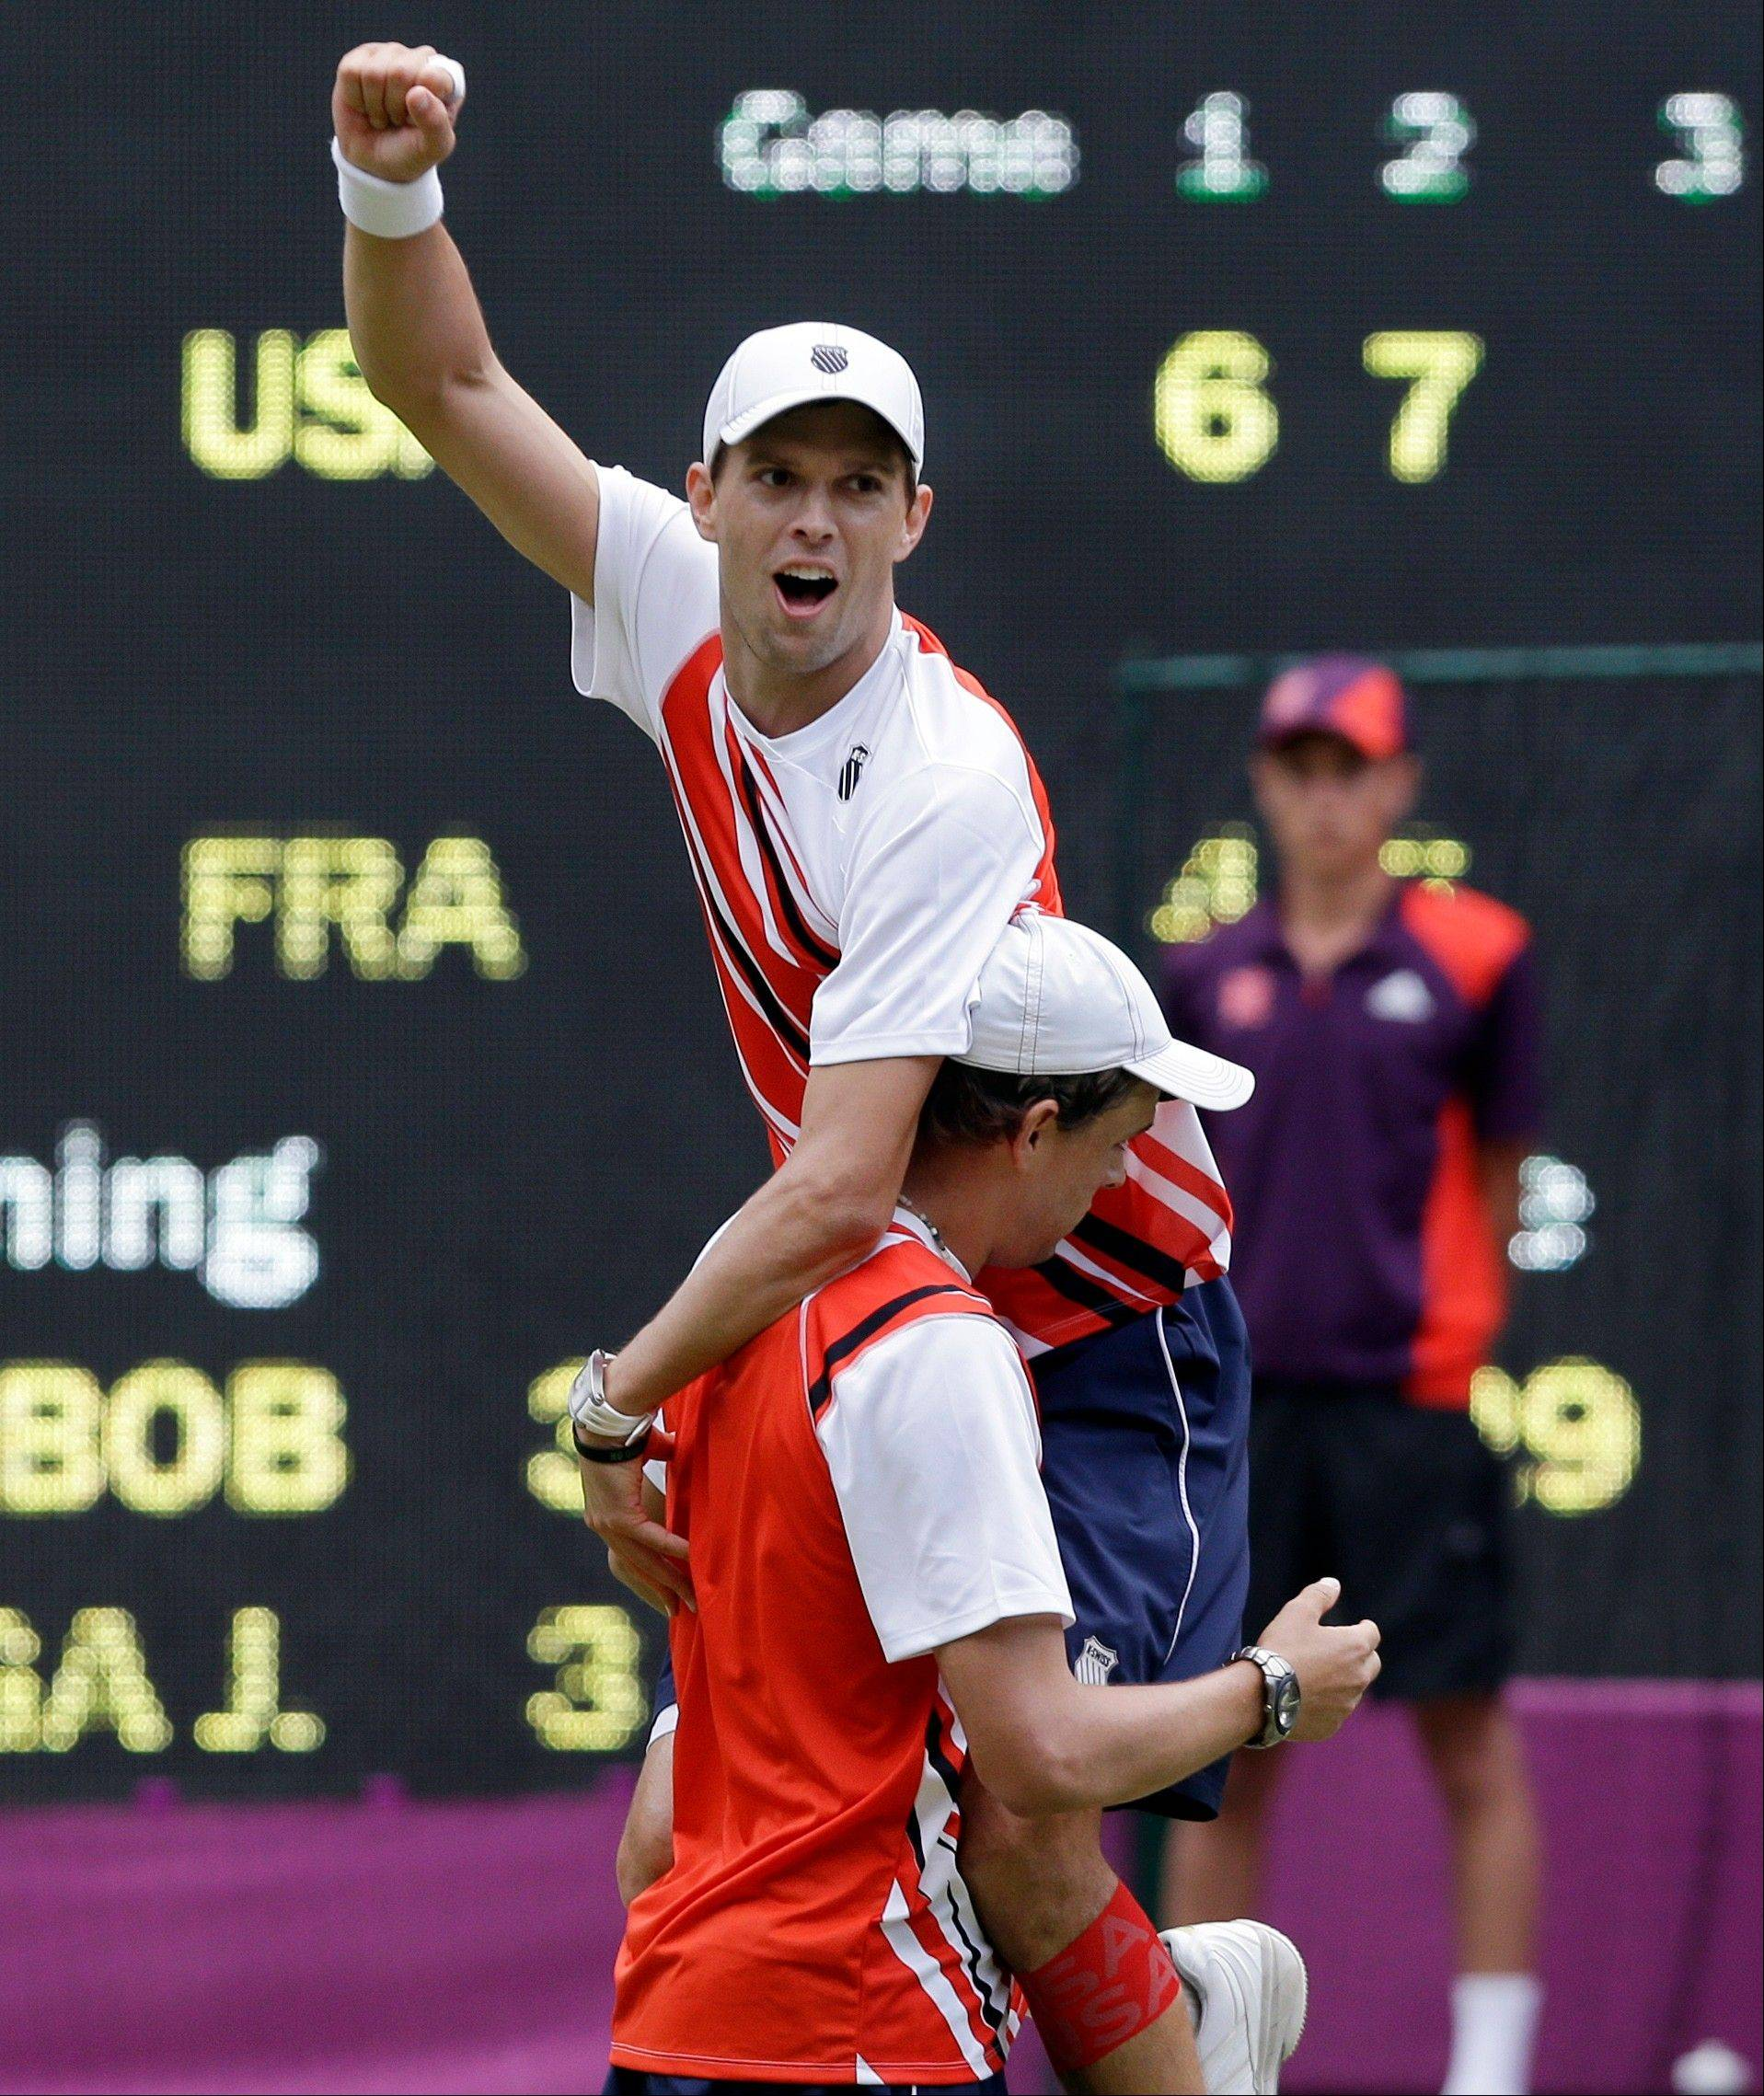 Mike Bryan, top, and Bob Bryan, bottom, of the United States, celebrate after defeating Jo-Wilfried Tsonga and Michael Llodra of France in the men's doubles gold medal match at the All England Lawn Tennis Club at Wimbledon, in London, at the 2012 Summer Olympics, Saturday, Aug. 4, 2012.